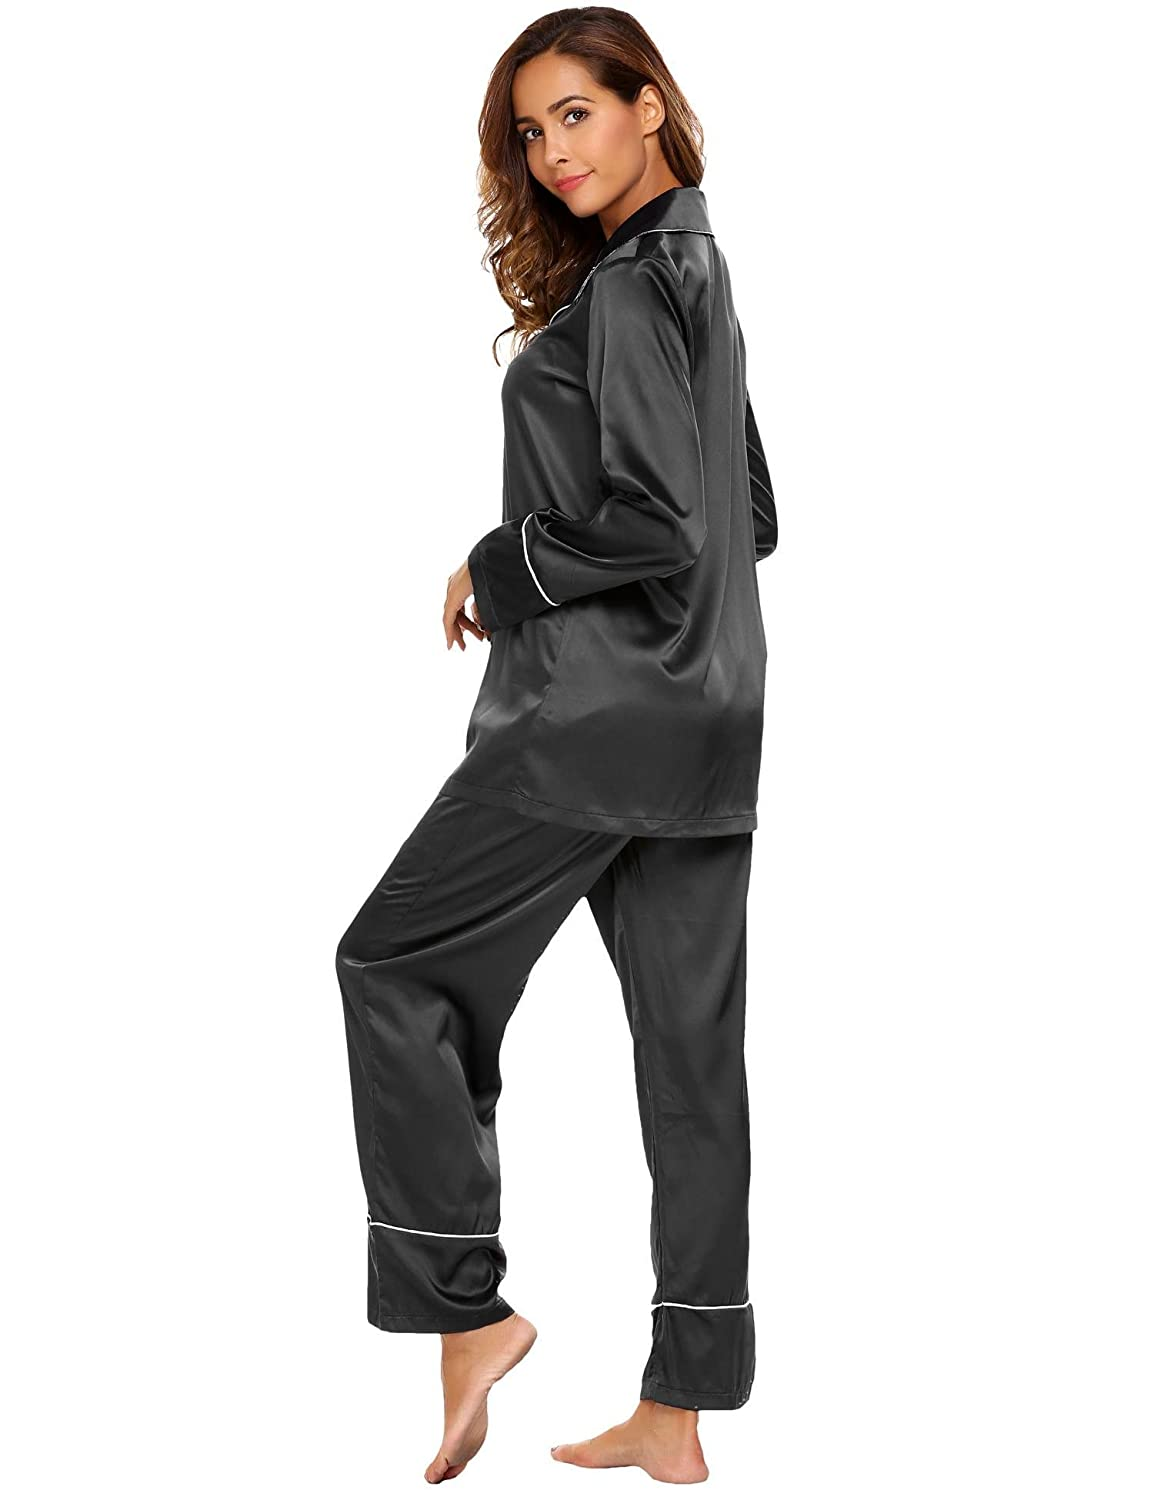 Ekouaer Women 2 Pieces Long Sleeve Pajama Sets Lounge Wear with Pj Elastic  Waist Pants Nightwear  Amazon.co.uk  Clothing e7a11c56f